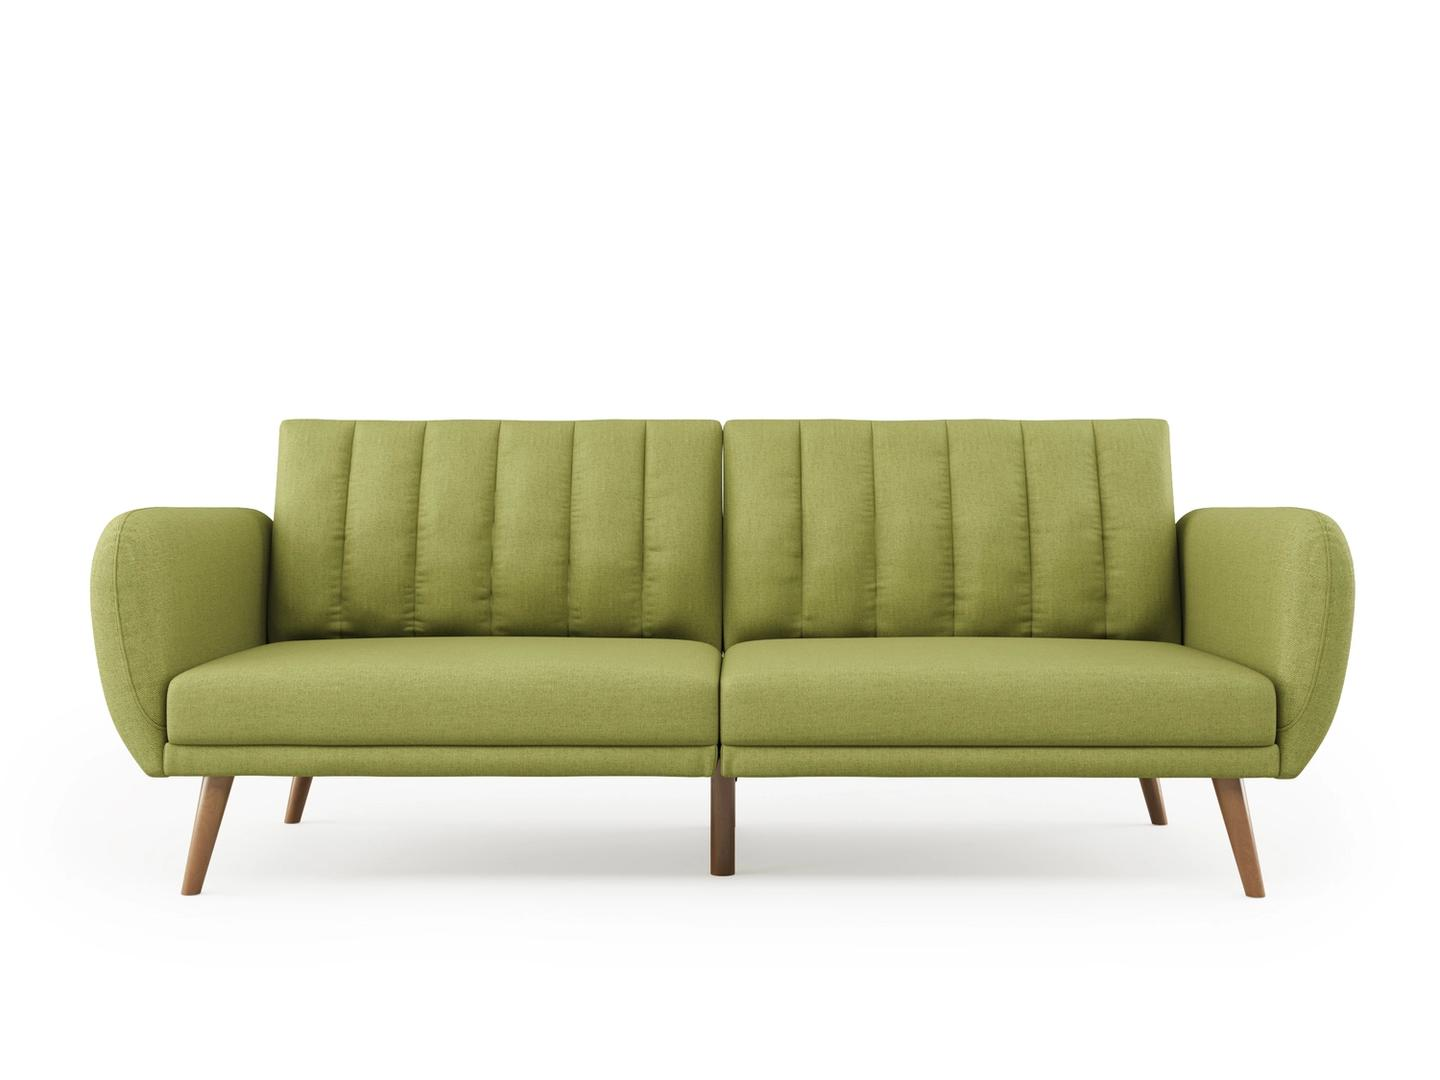 Product shot of a green sofa